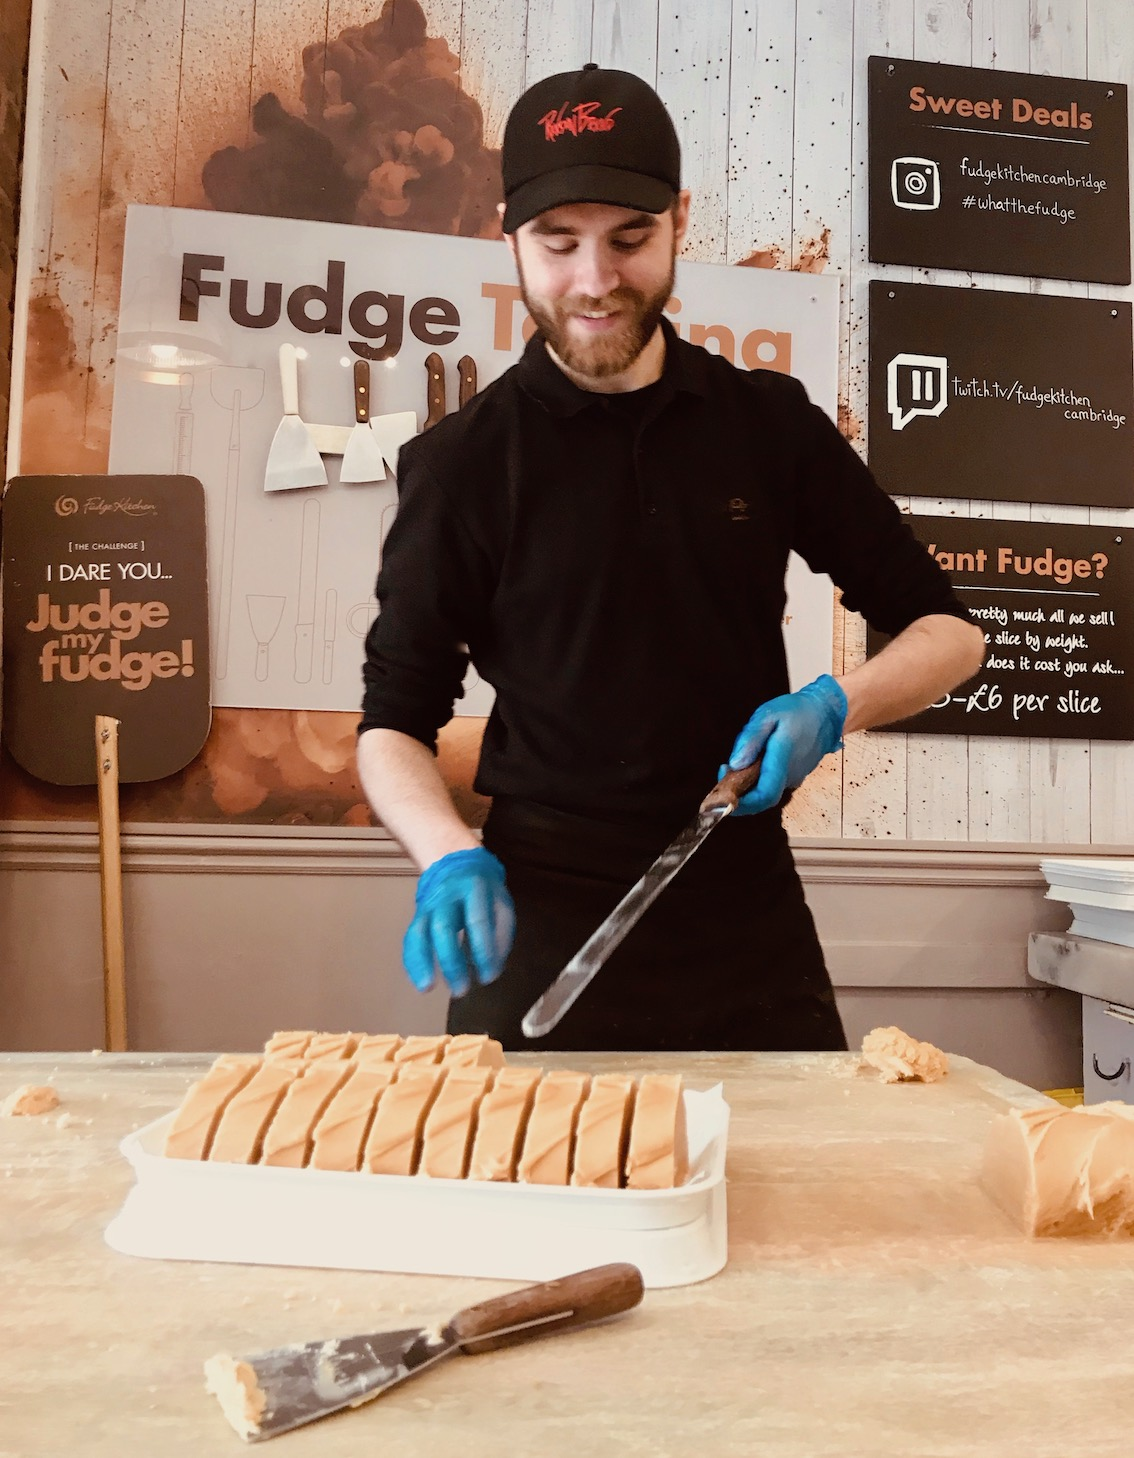 Fudge Kitchen Cambridge England.